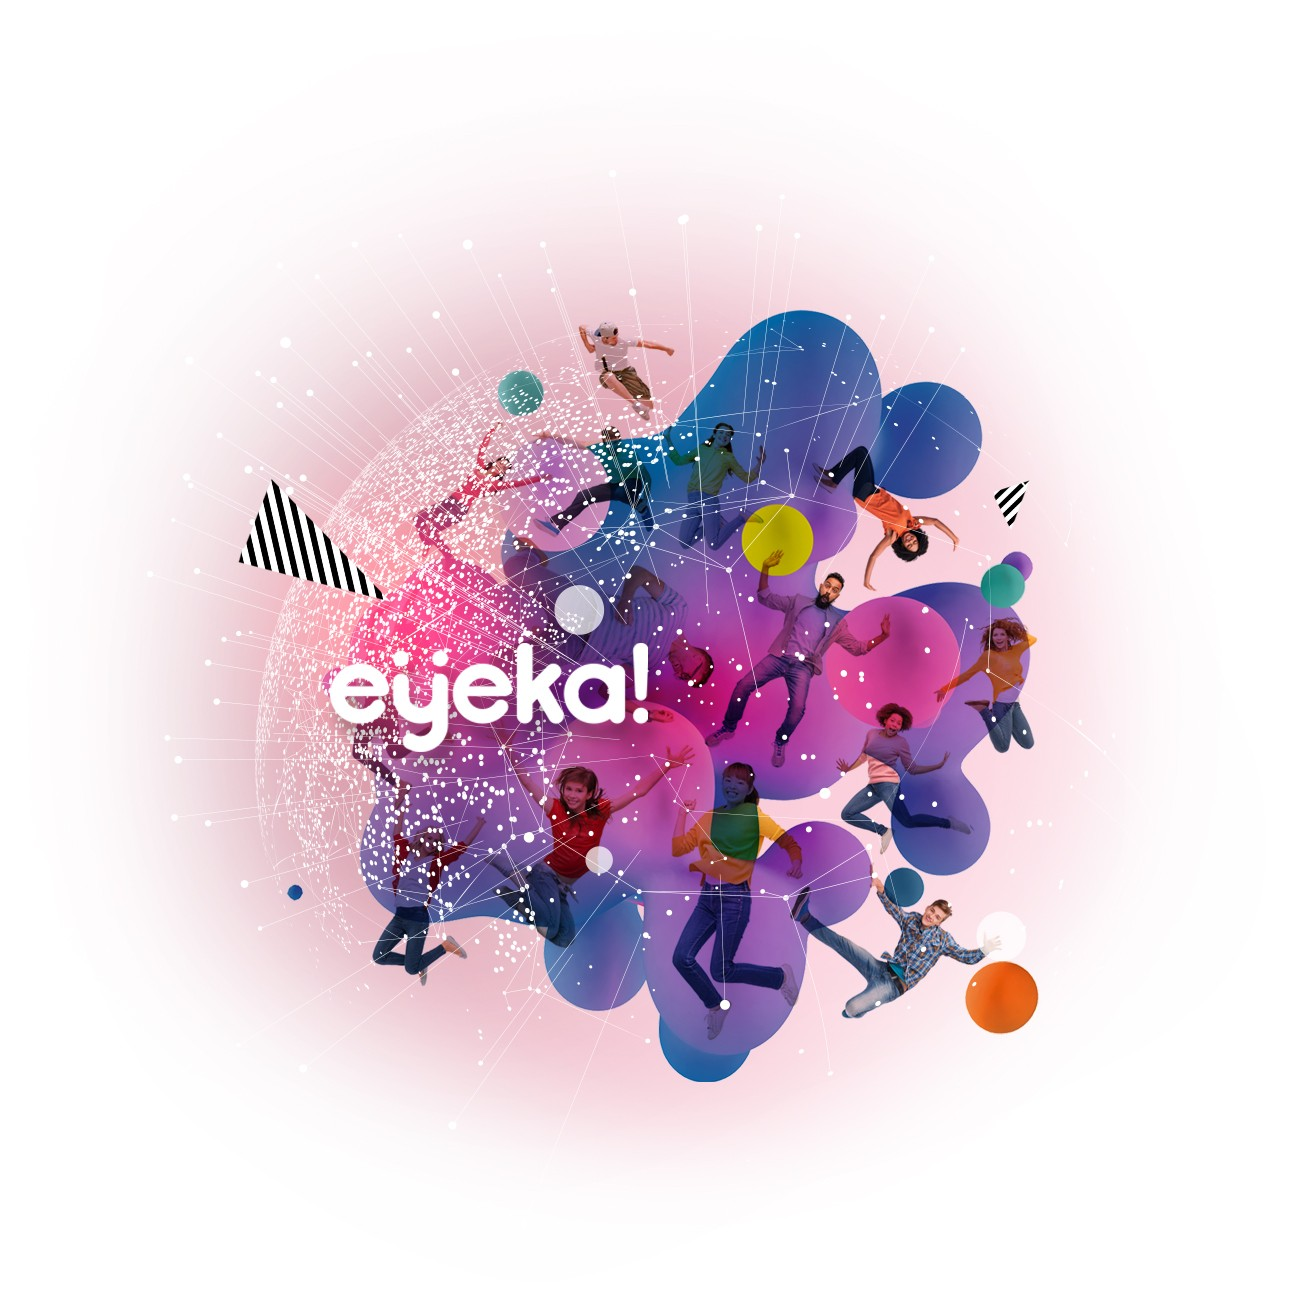 eyeka by InSites Consulting